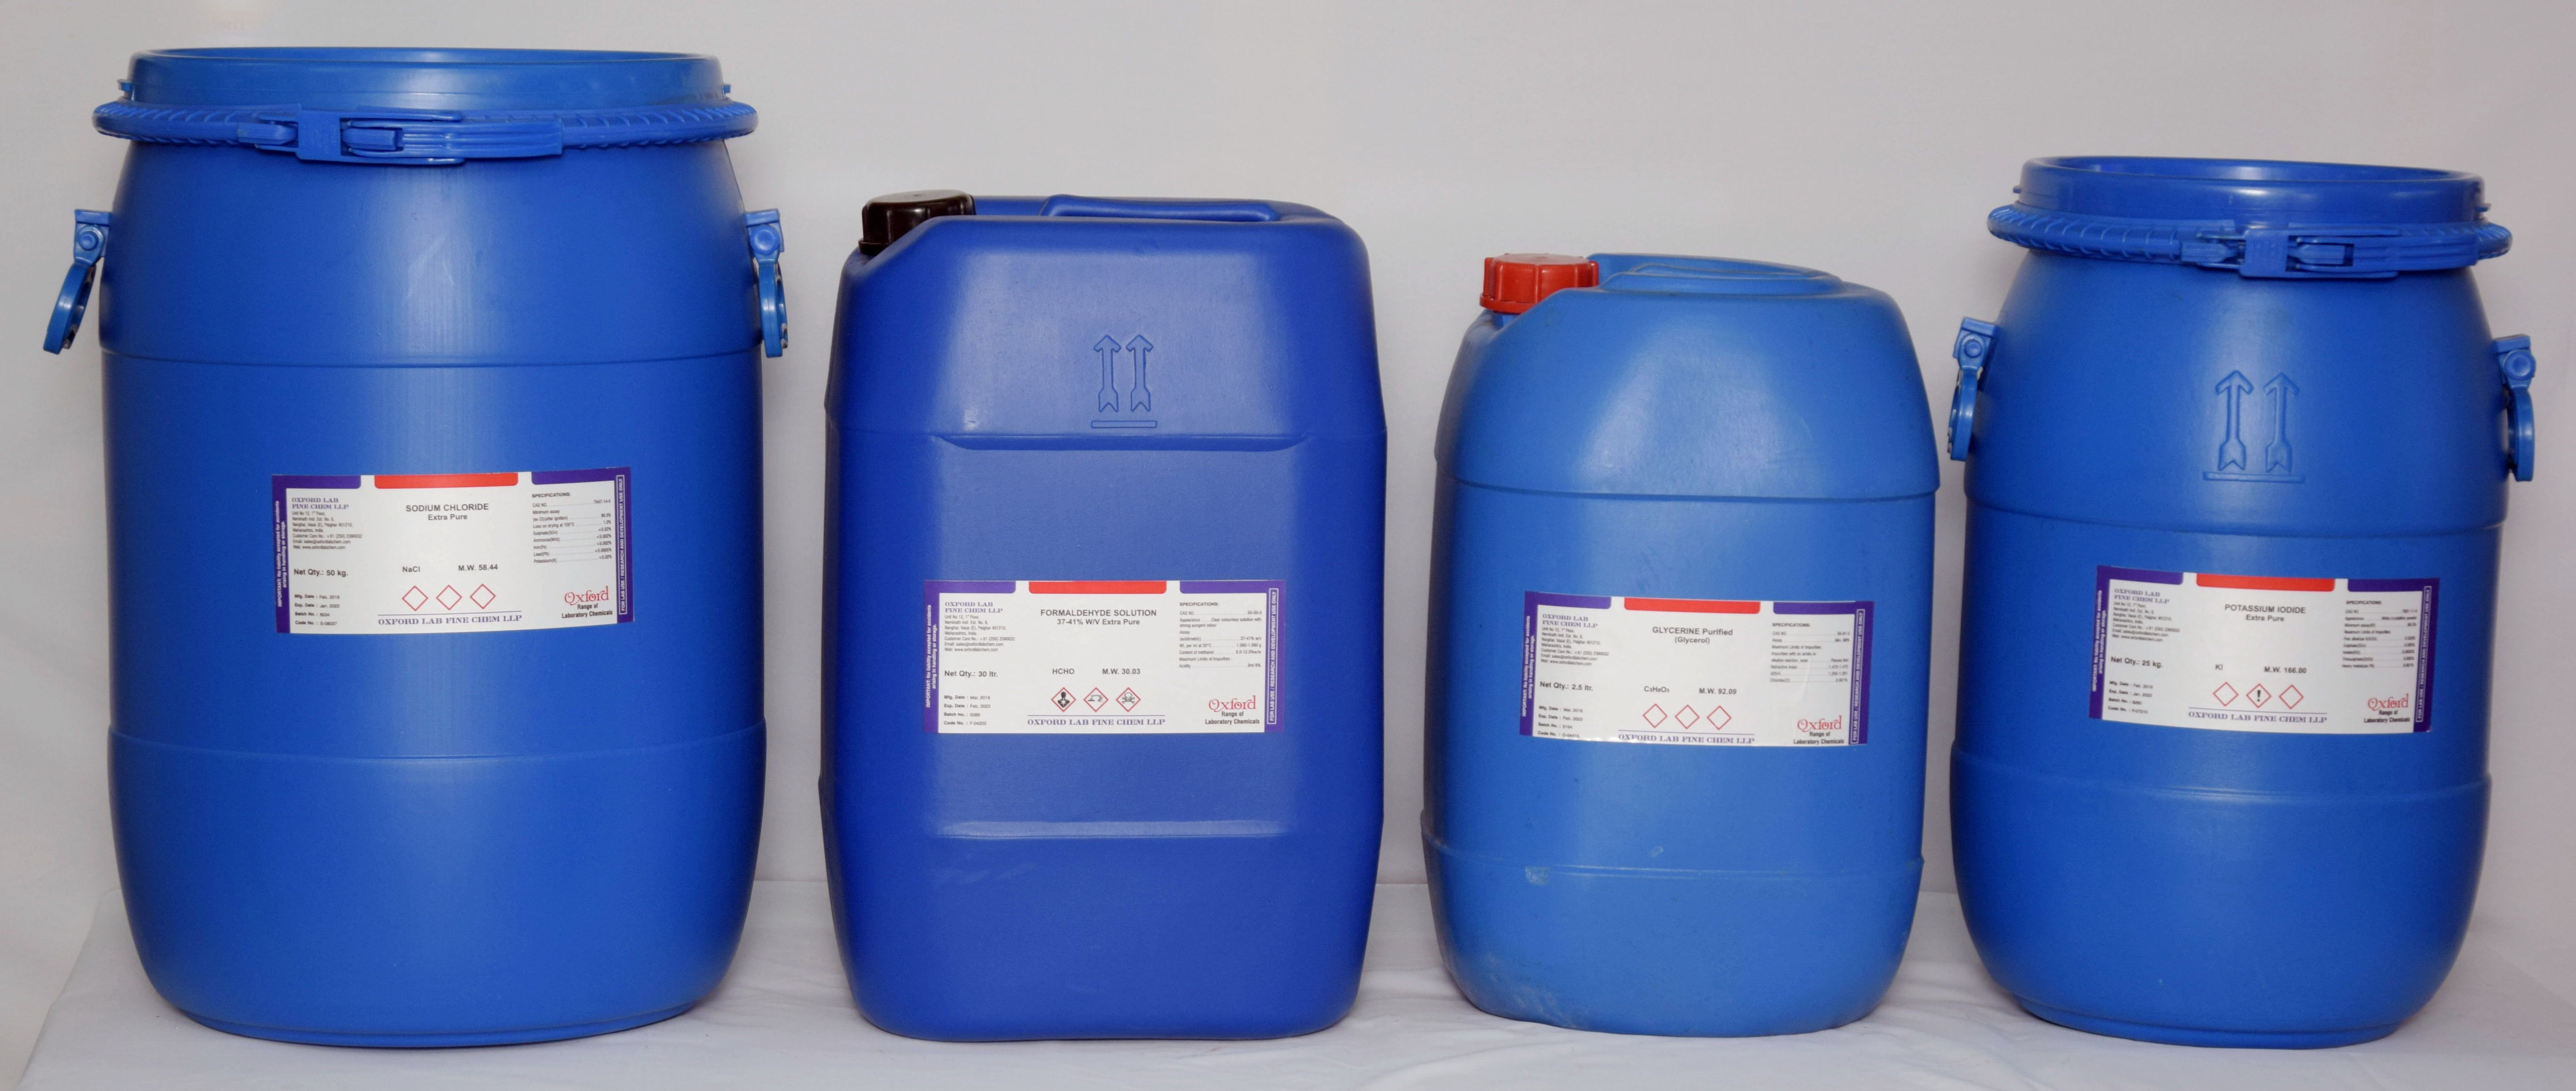 Laboratory Chemical Suppliers In 2020 Chemical Suppliers Laboratory Chemicals Chemical